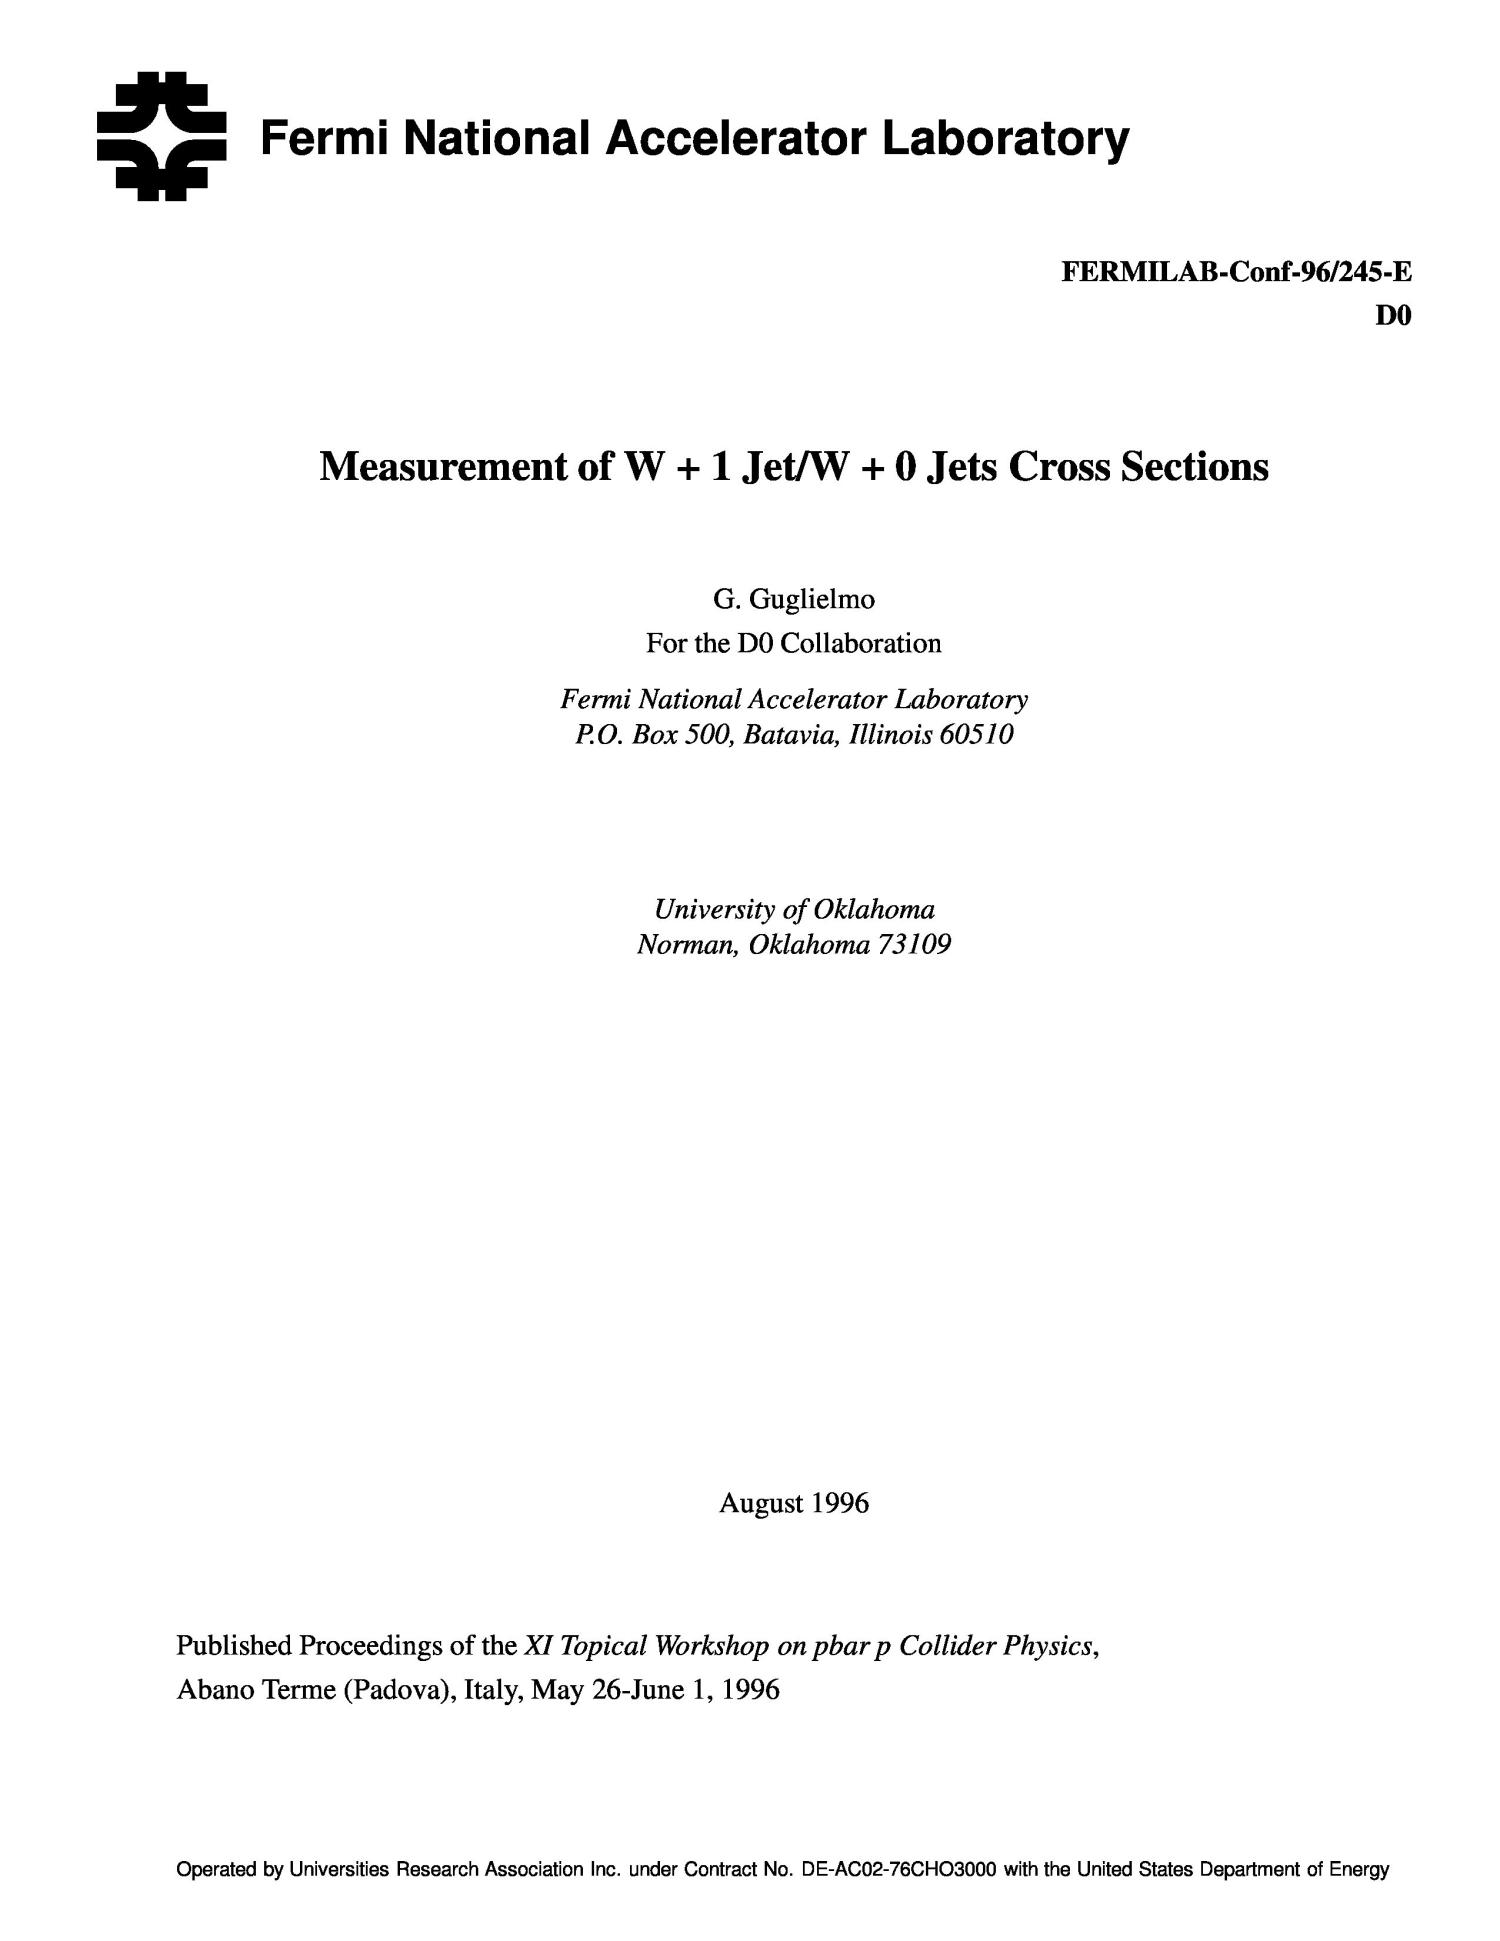 Measurement of W + 1 jet/W + 0 jets cross sections                                                                                                      [Sequence #]: 1 of 12